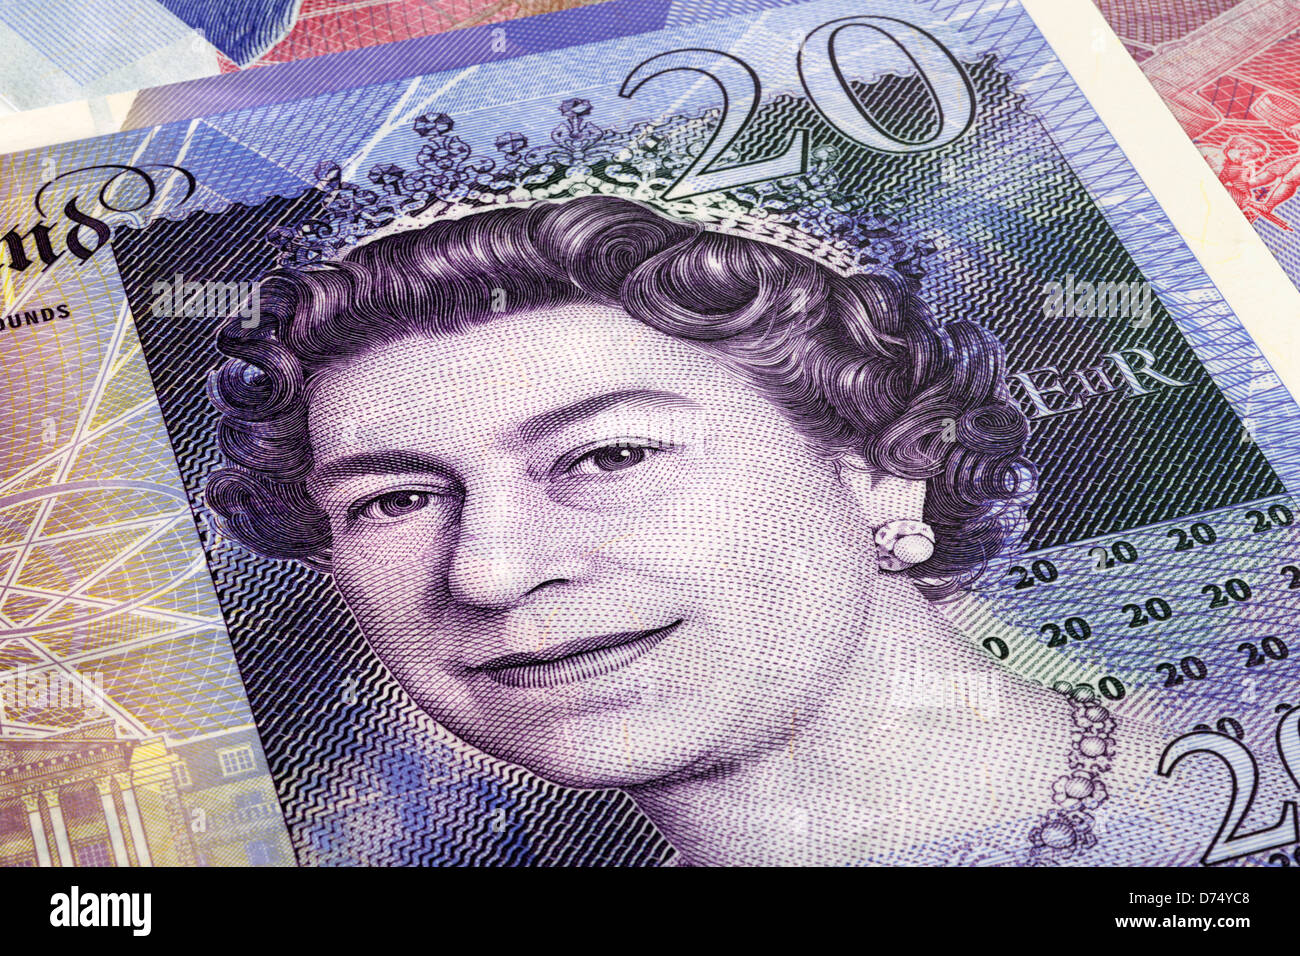 £20 pound note close up of the Queen's face - Stock Image